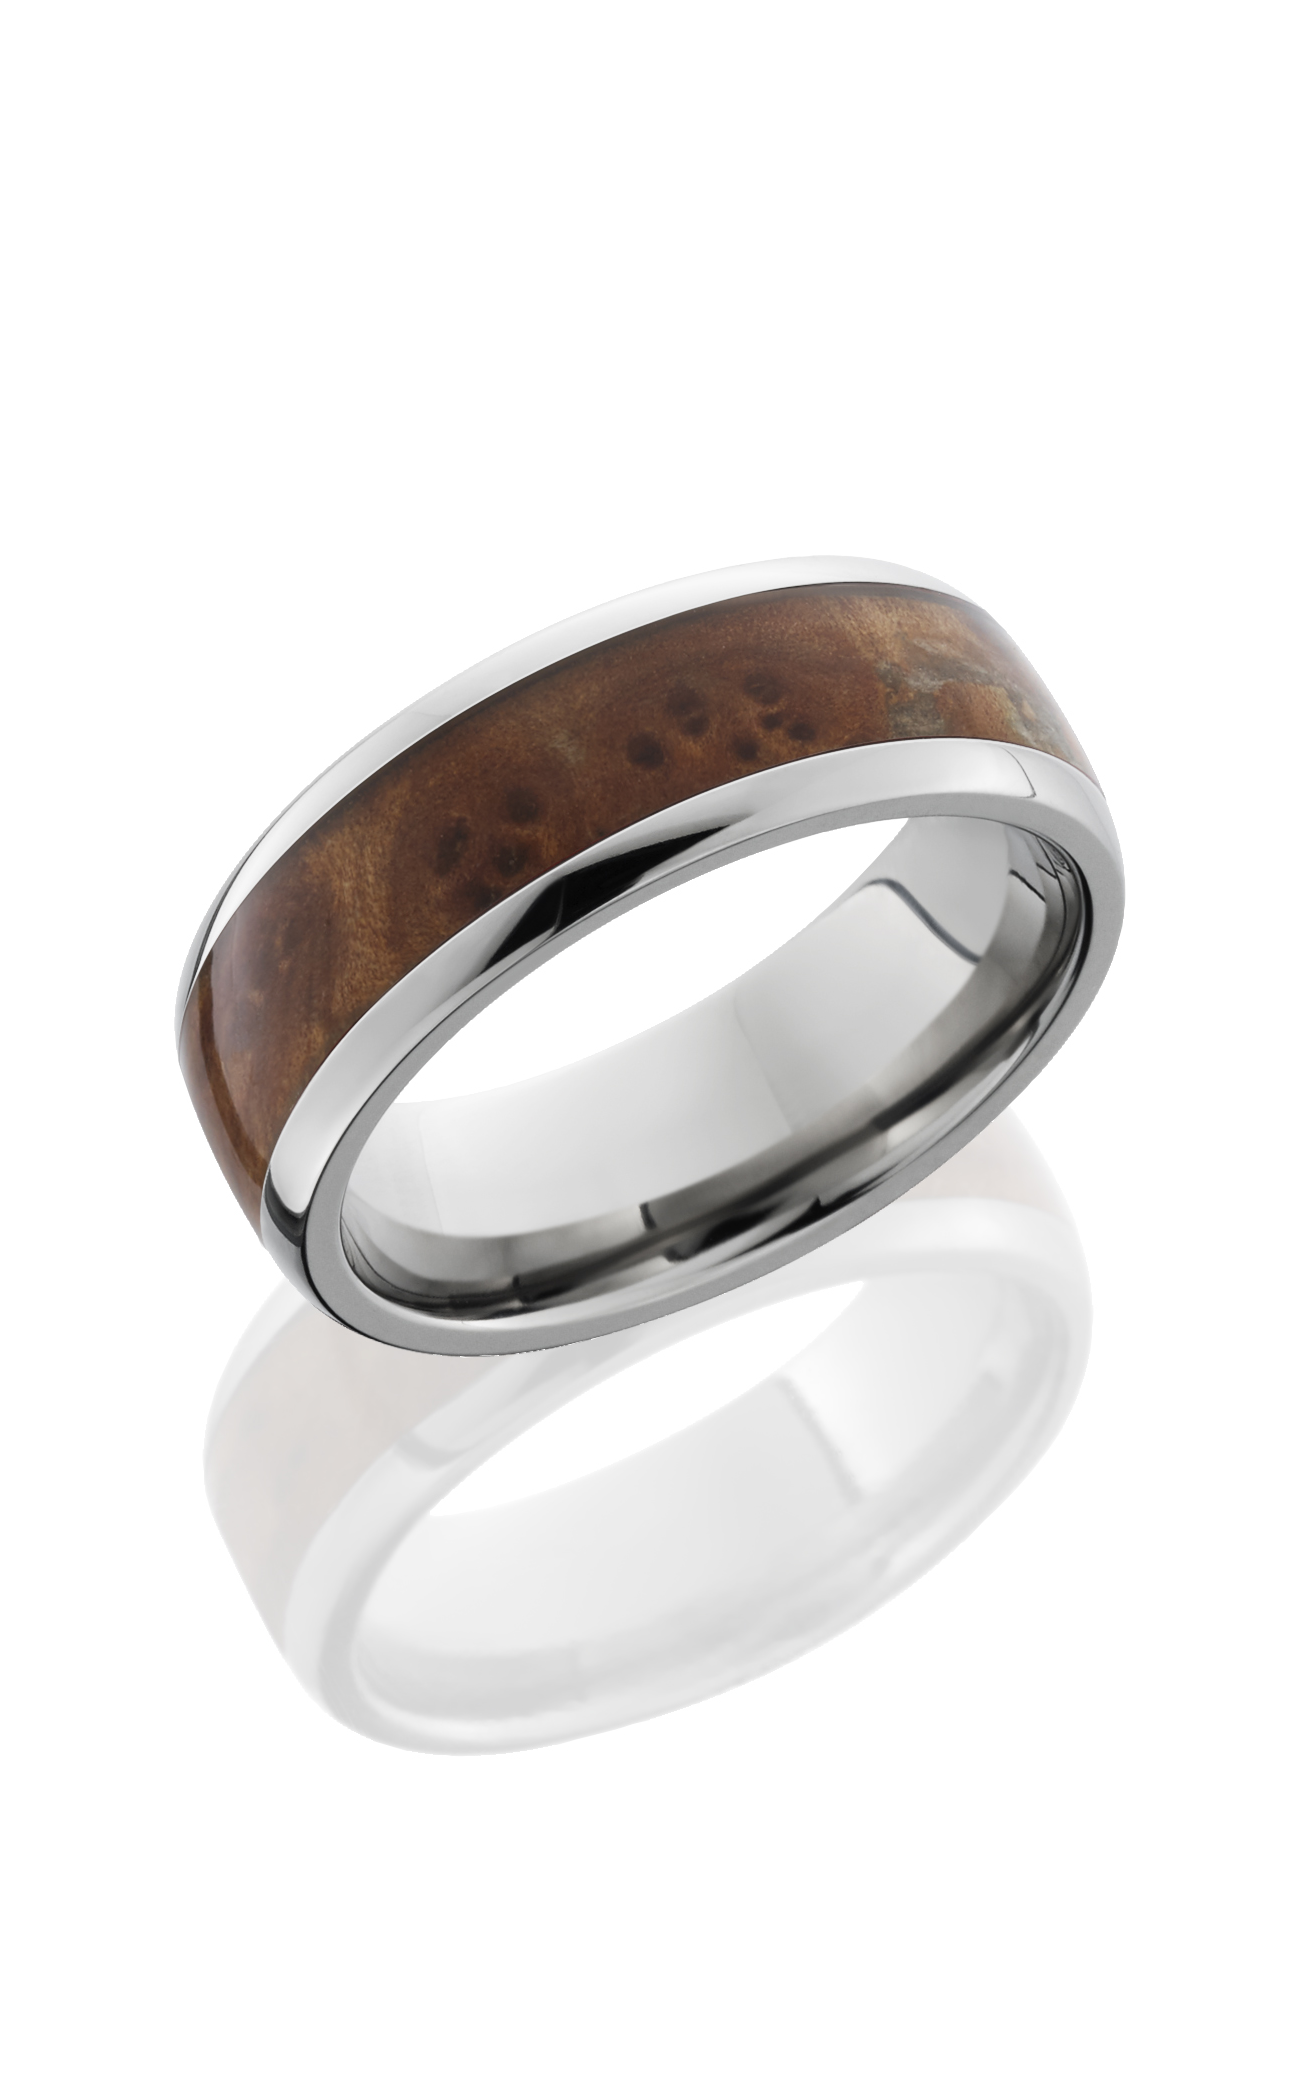 Lashbrook Hardwood Collection Wedding band 90105 product image